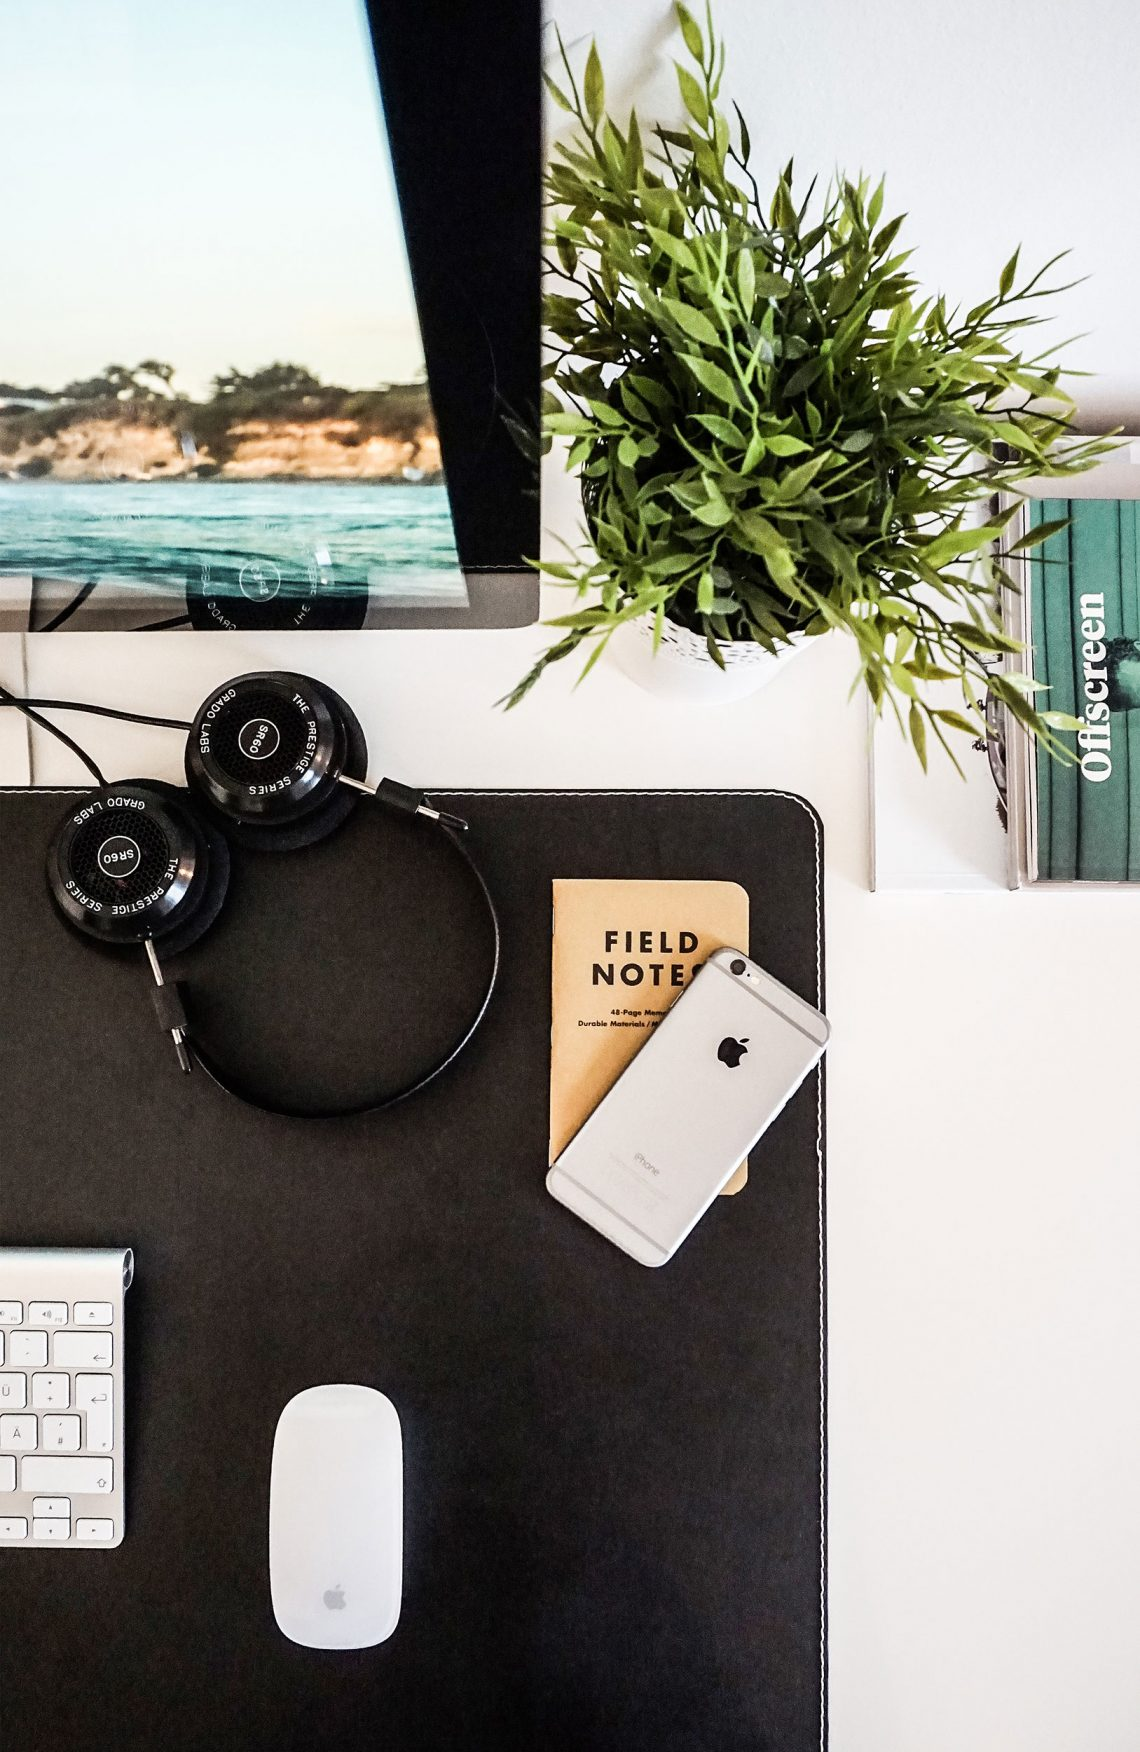 Field notes and head phones on desk